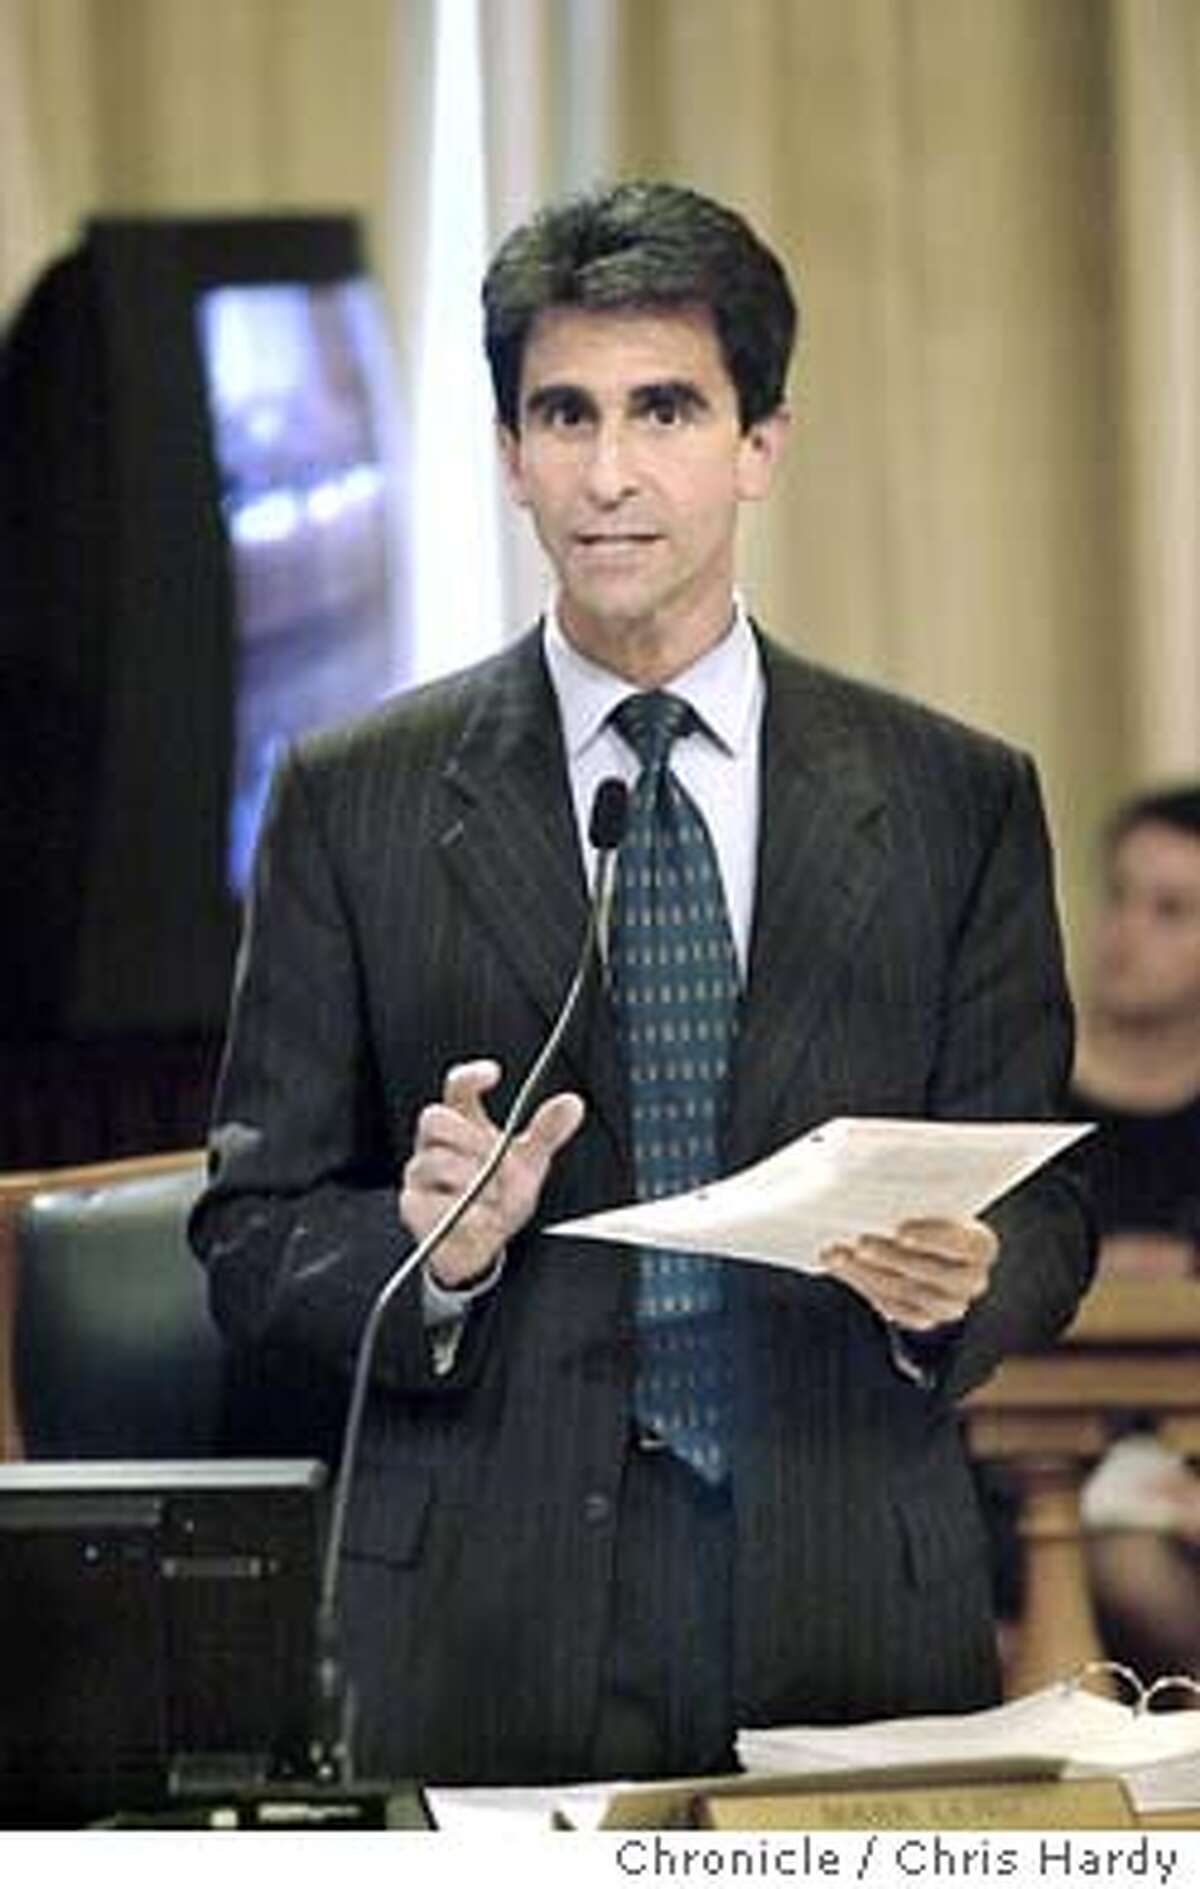 PARKING-C-06AUG01-MT-CH BOARD OF SUPERVISORS VOTE ON PARKING FINE INCREASES SUPERVISOR MARK LENO CALLING FOR INCREASED FINES -----CHRONICLE PHOTO BY CHRIS HARDY ALSO RAN 08/05/03